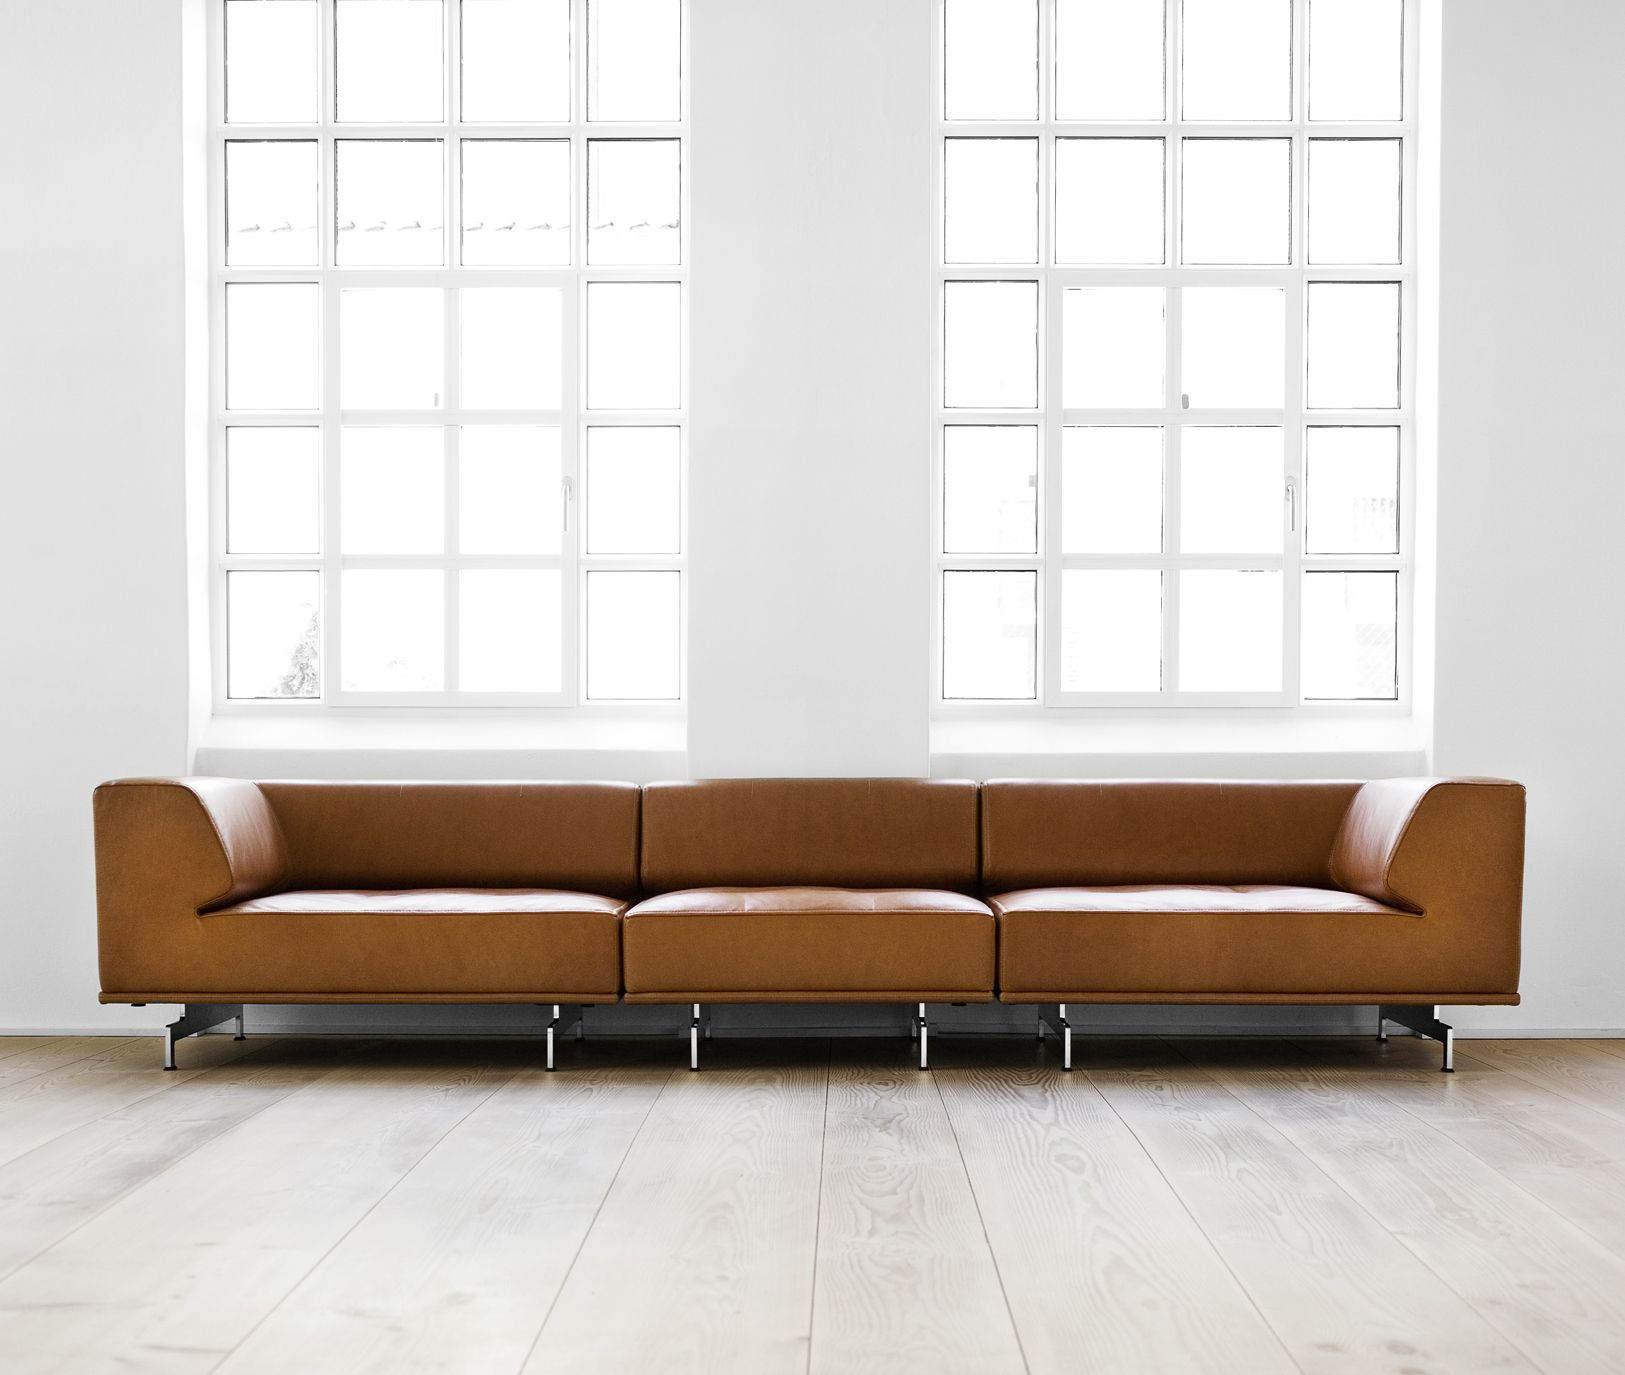 Delphi Is More Than Just A Sofa. Delphi Is A Dynamic Approach To The Sofa